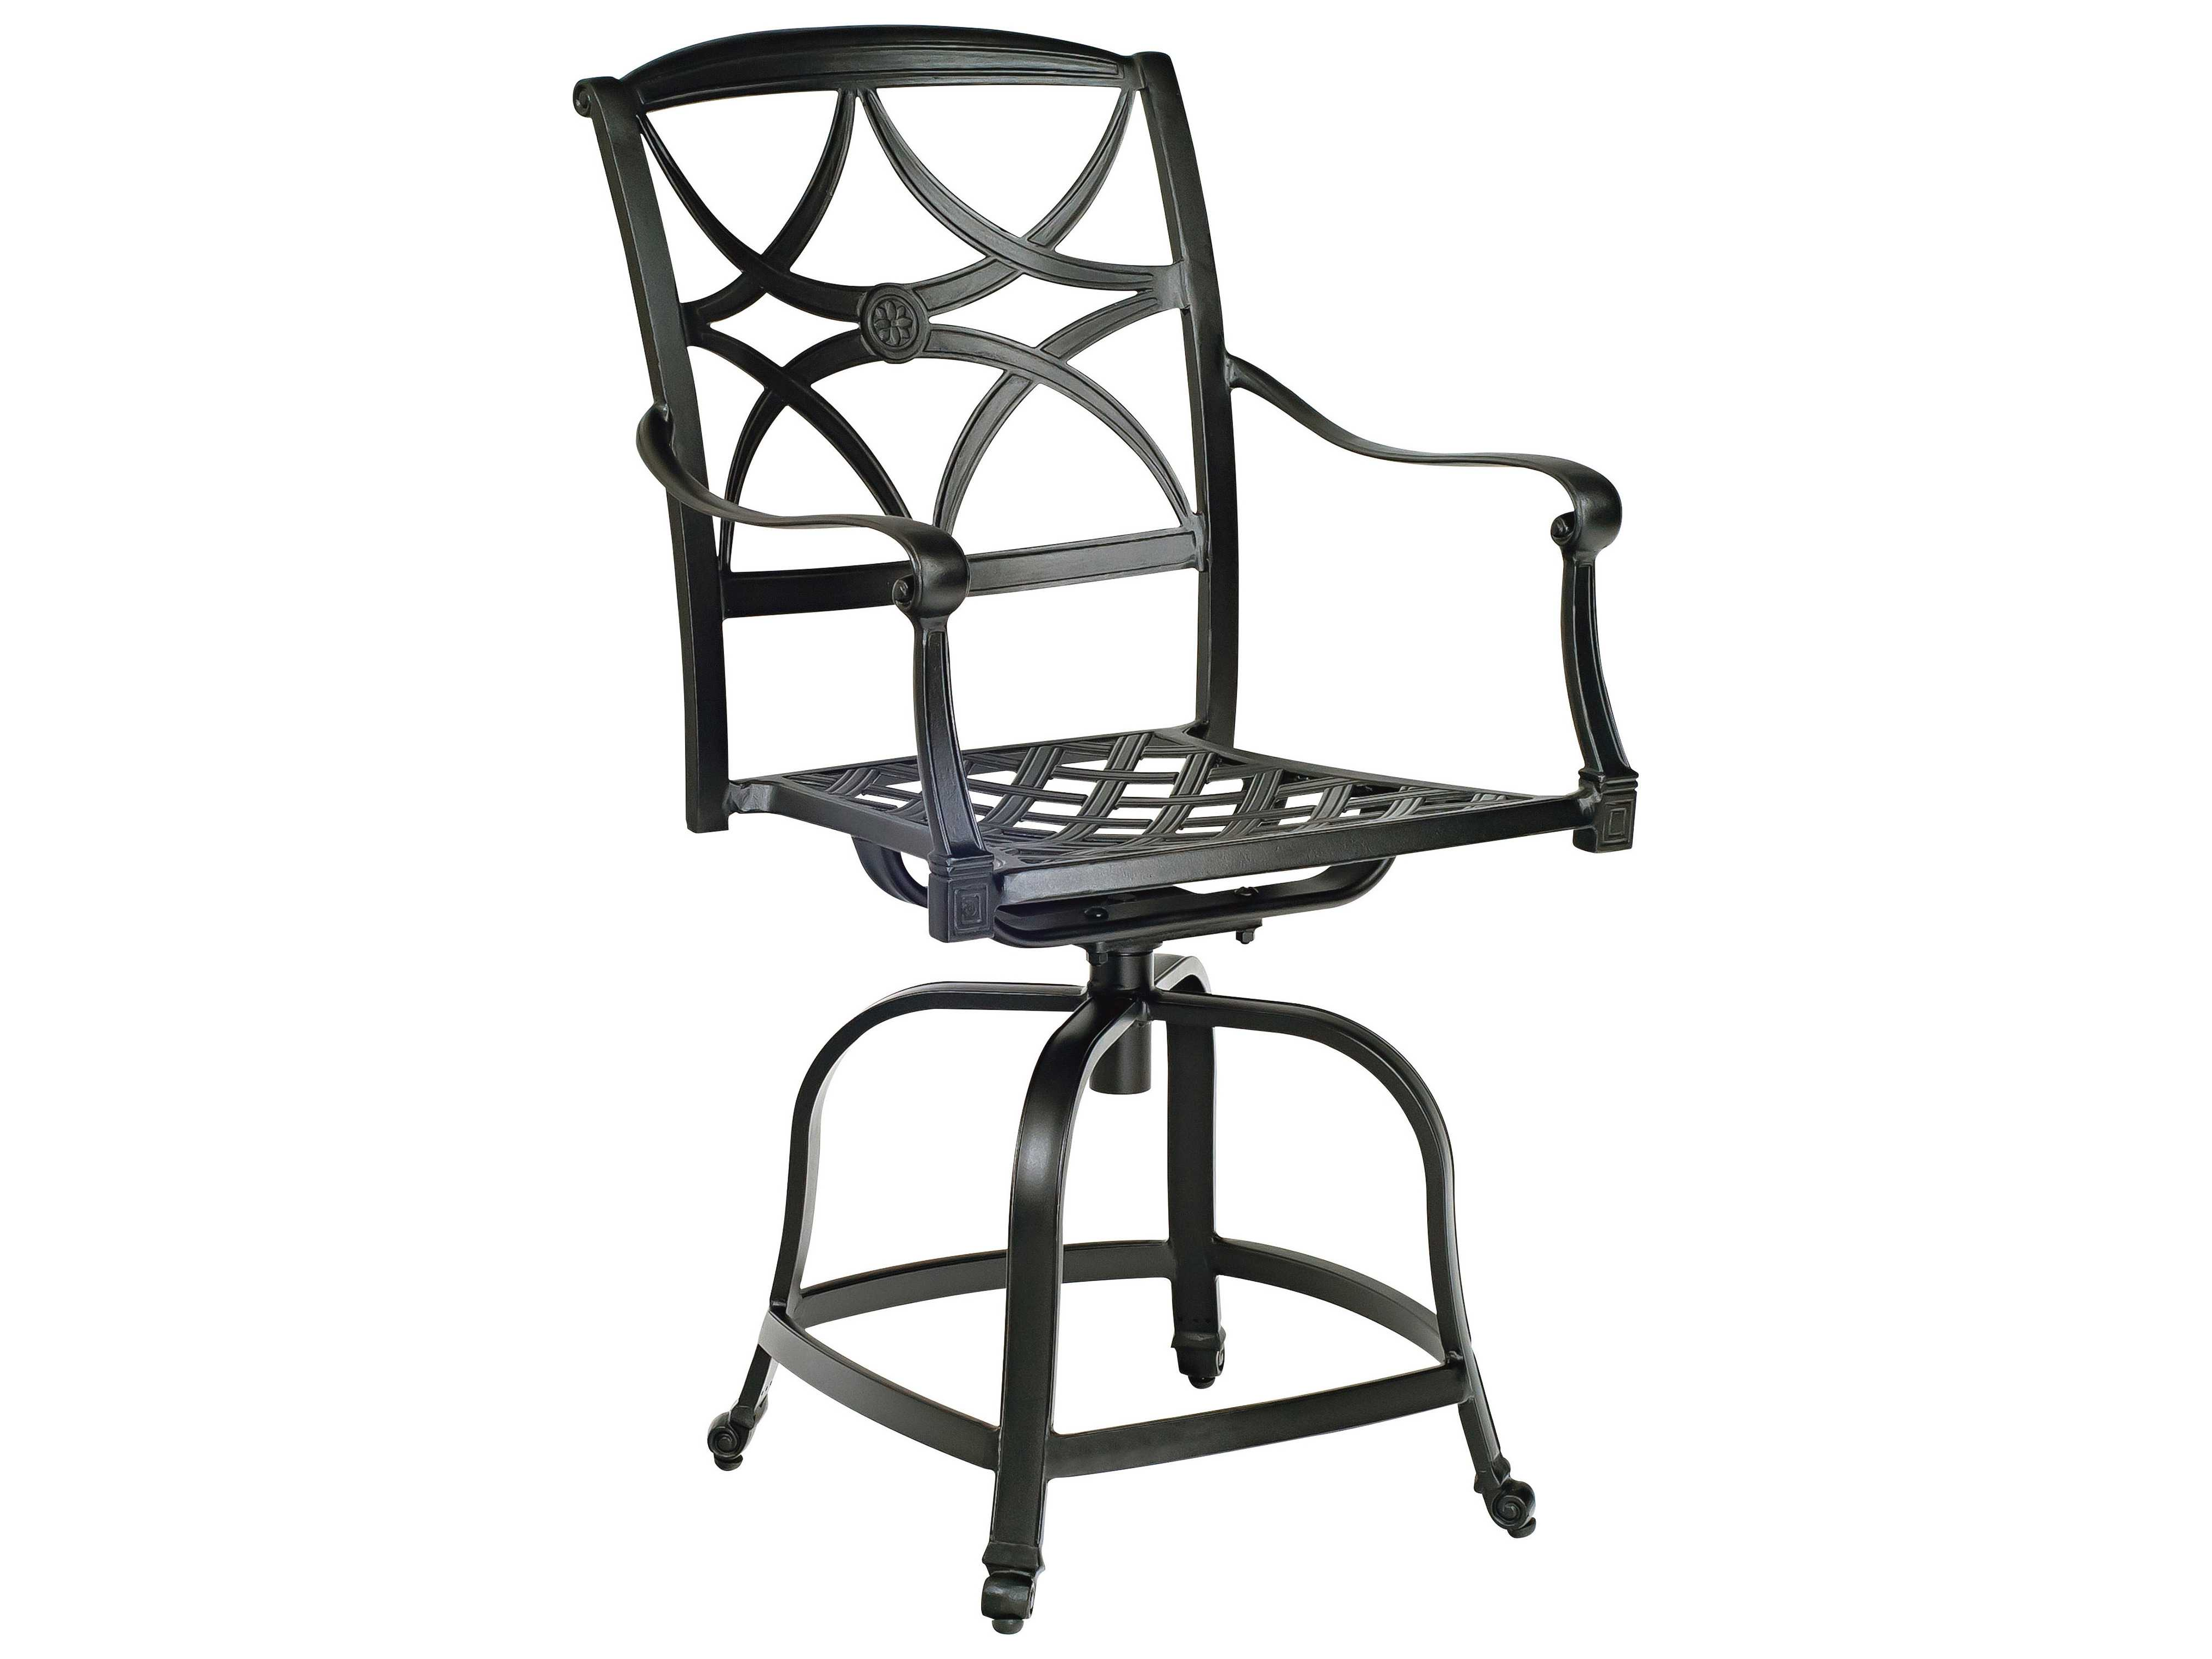 Woodard Wiltshire Aluminum Counter Height Fire Pit Set